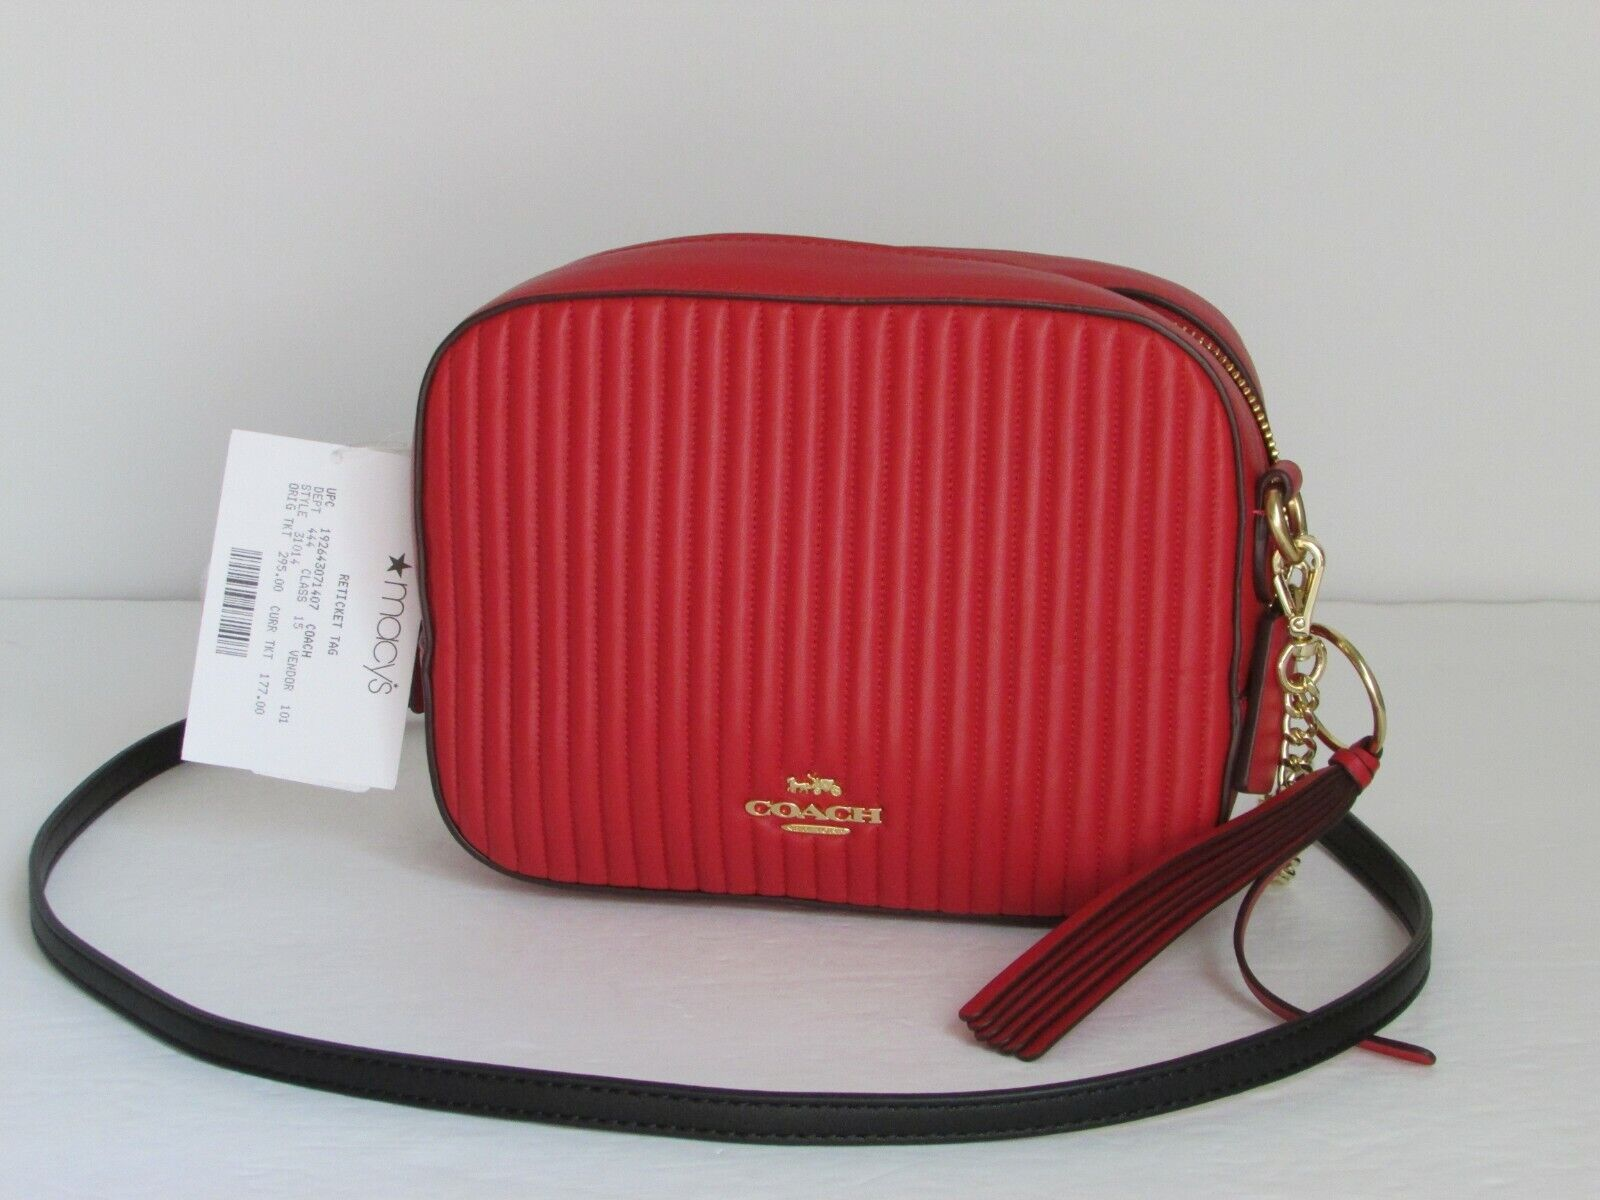 NEW Coach Camera Quilted Red Leather Crossbody Shoulder Hand